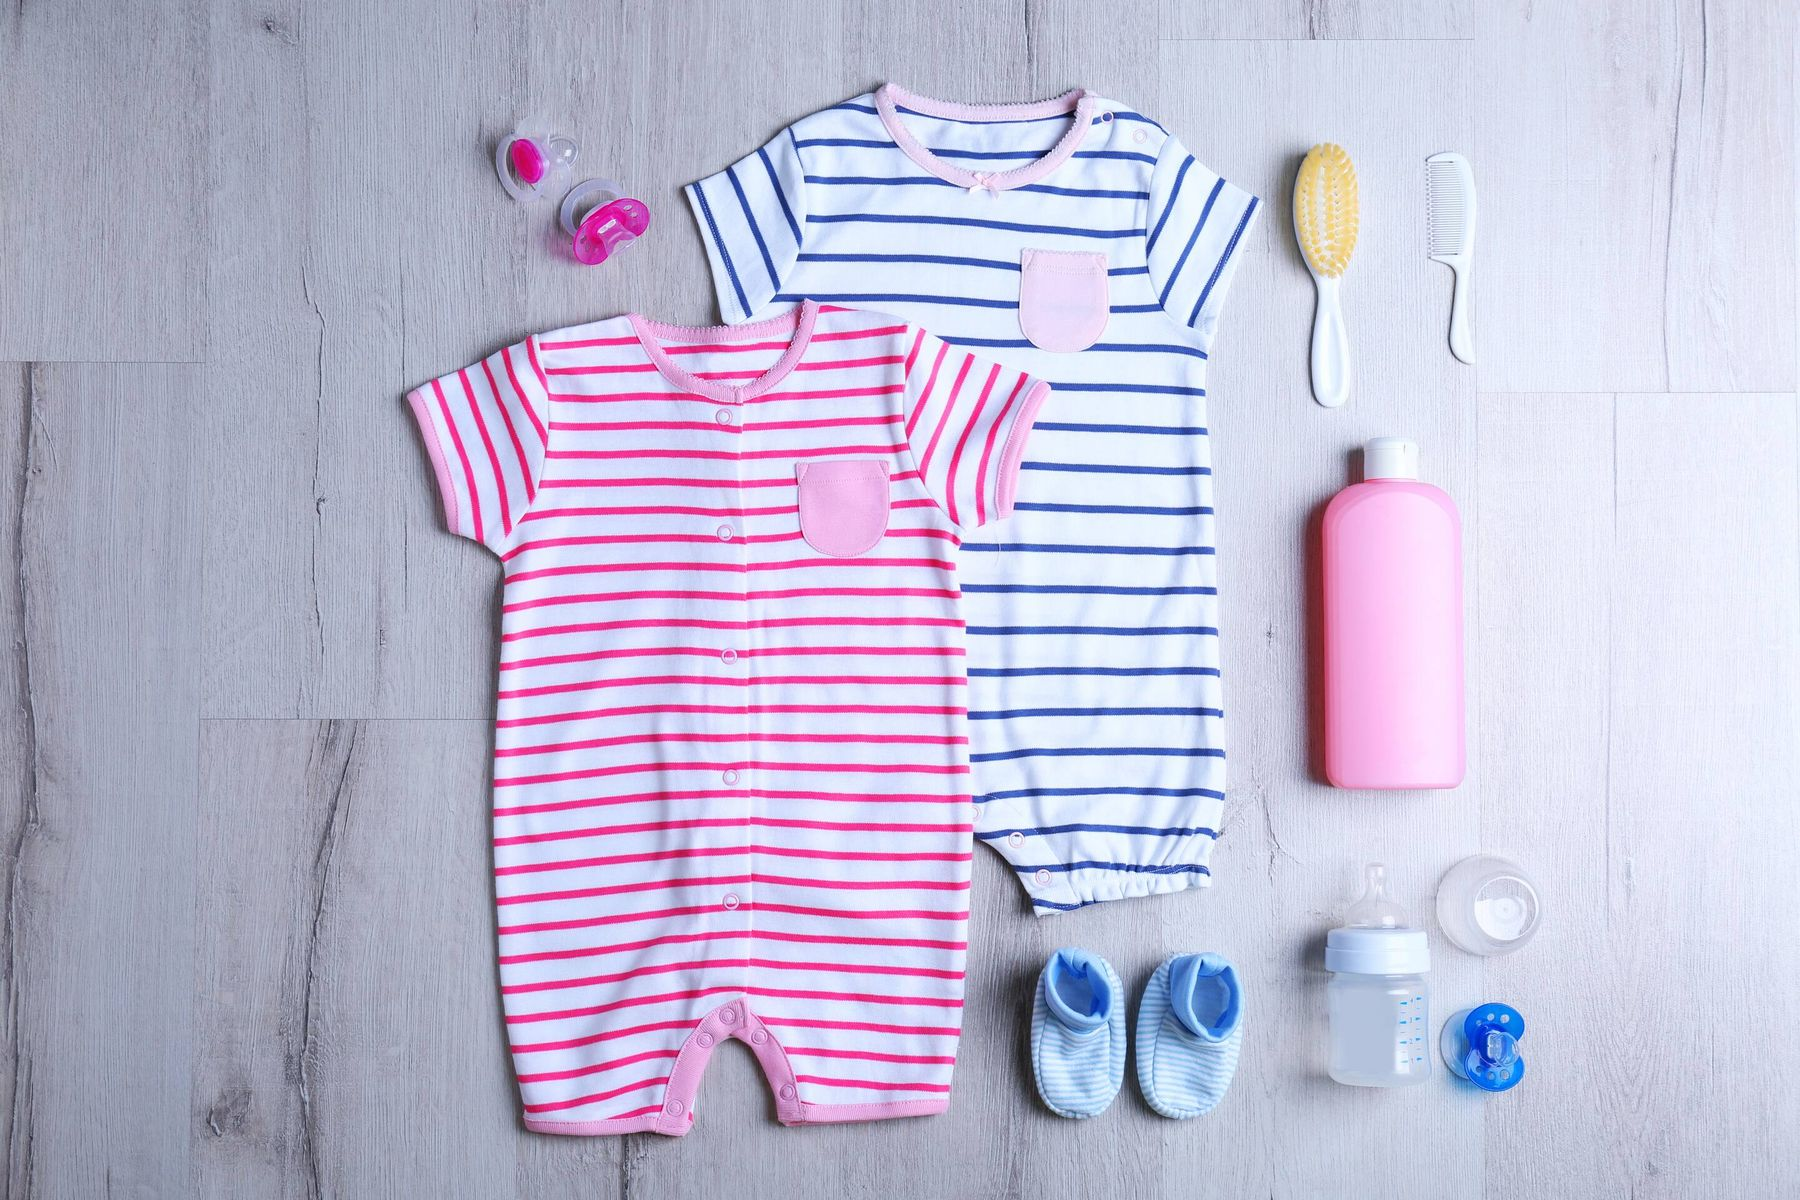 How to Remove Breast Milk Stains from Baby's Clothes | Cleanipedia